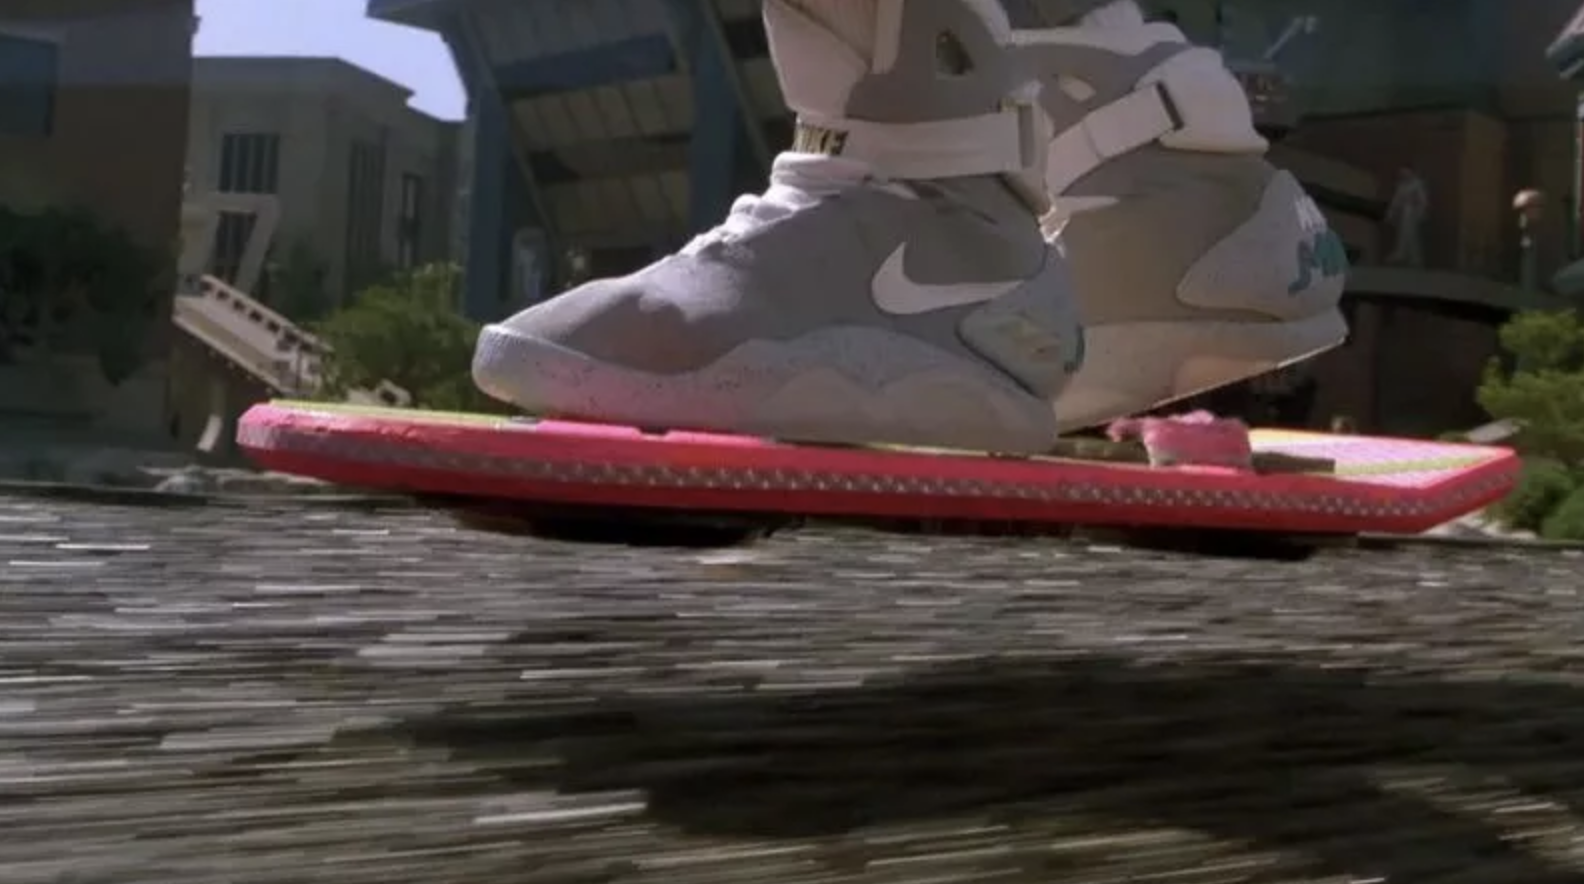 While we don't have actual flying Hoverboards like in the movie (just those dangerous rolling ones with the same name) – that vision isn't too far off from what we have now.